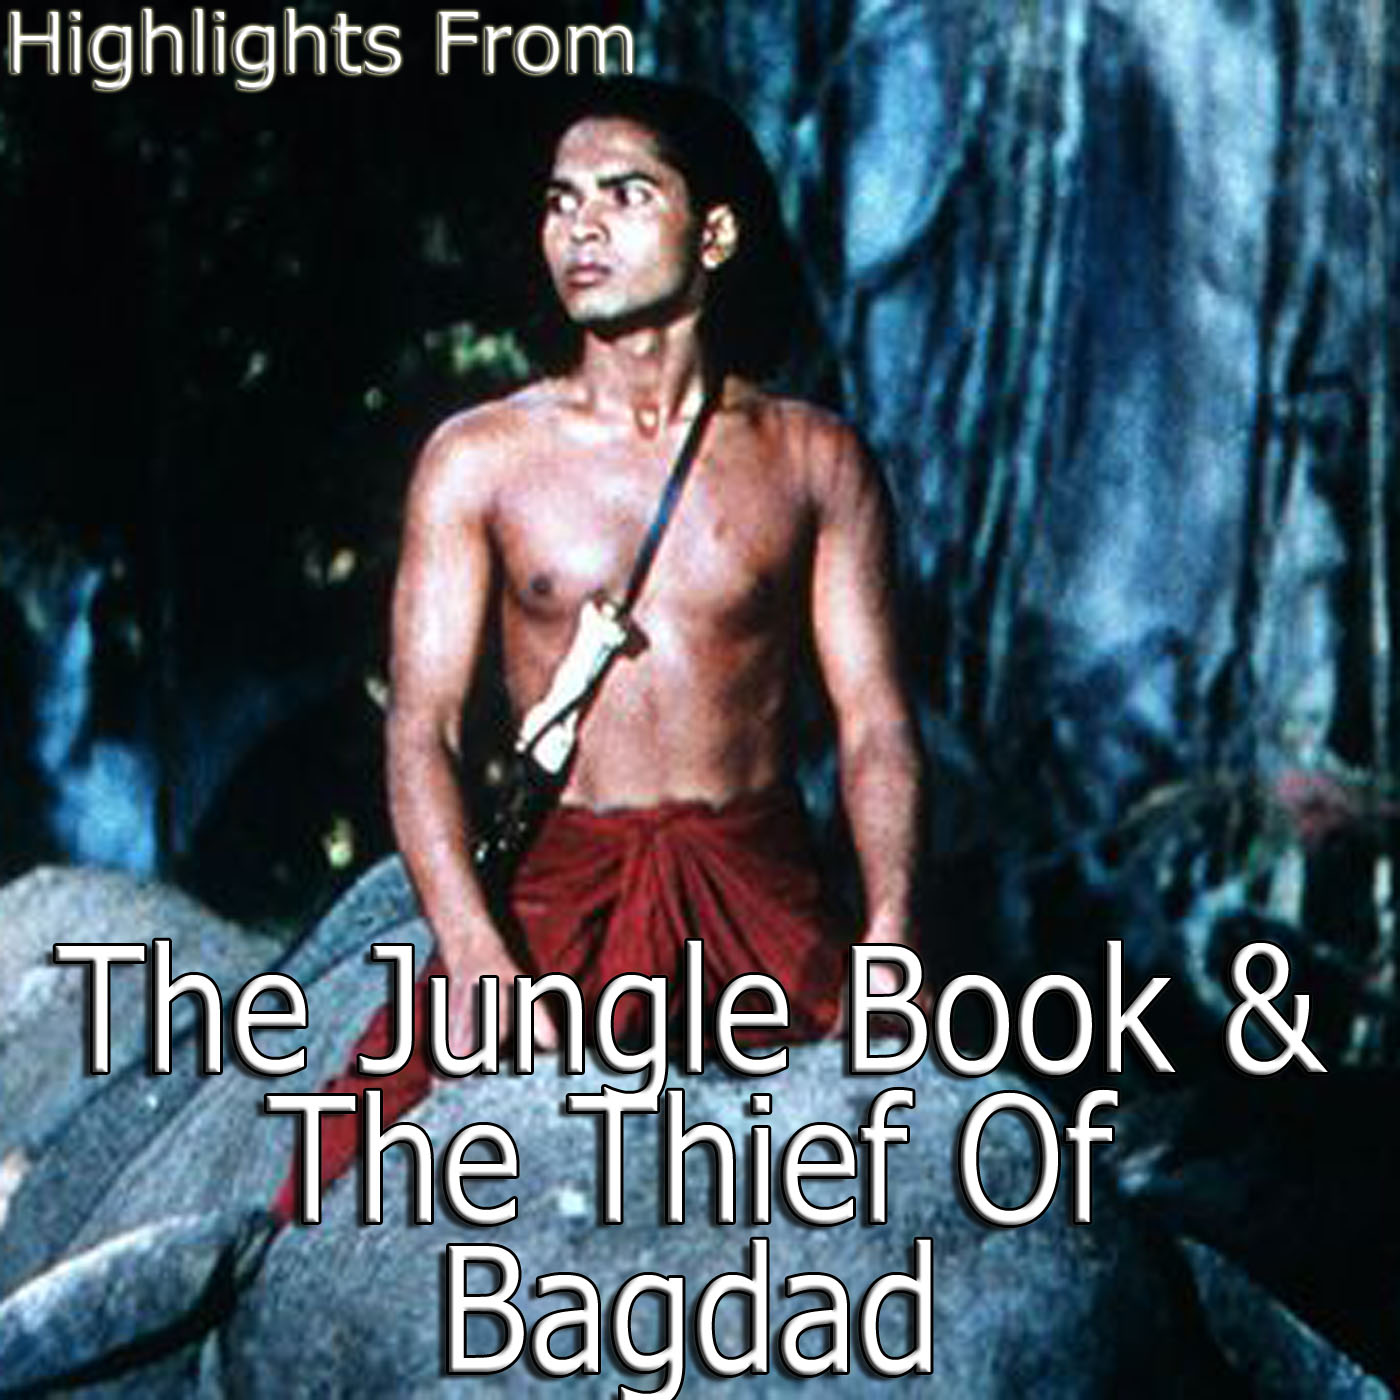 Original Soundtrack - Highlights from The Jungle Book and the Thief of Baghdad